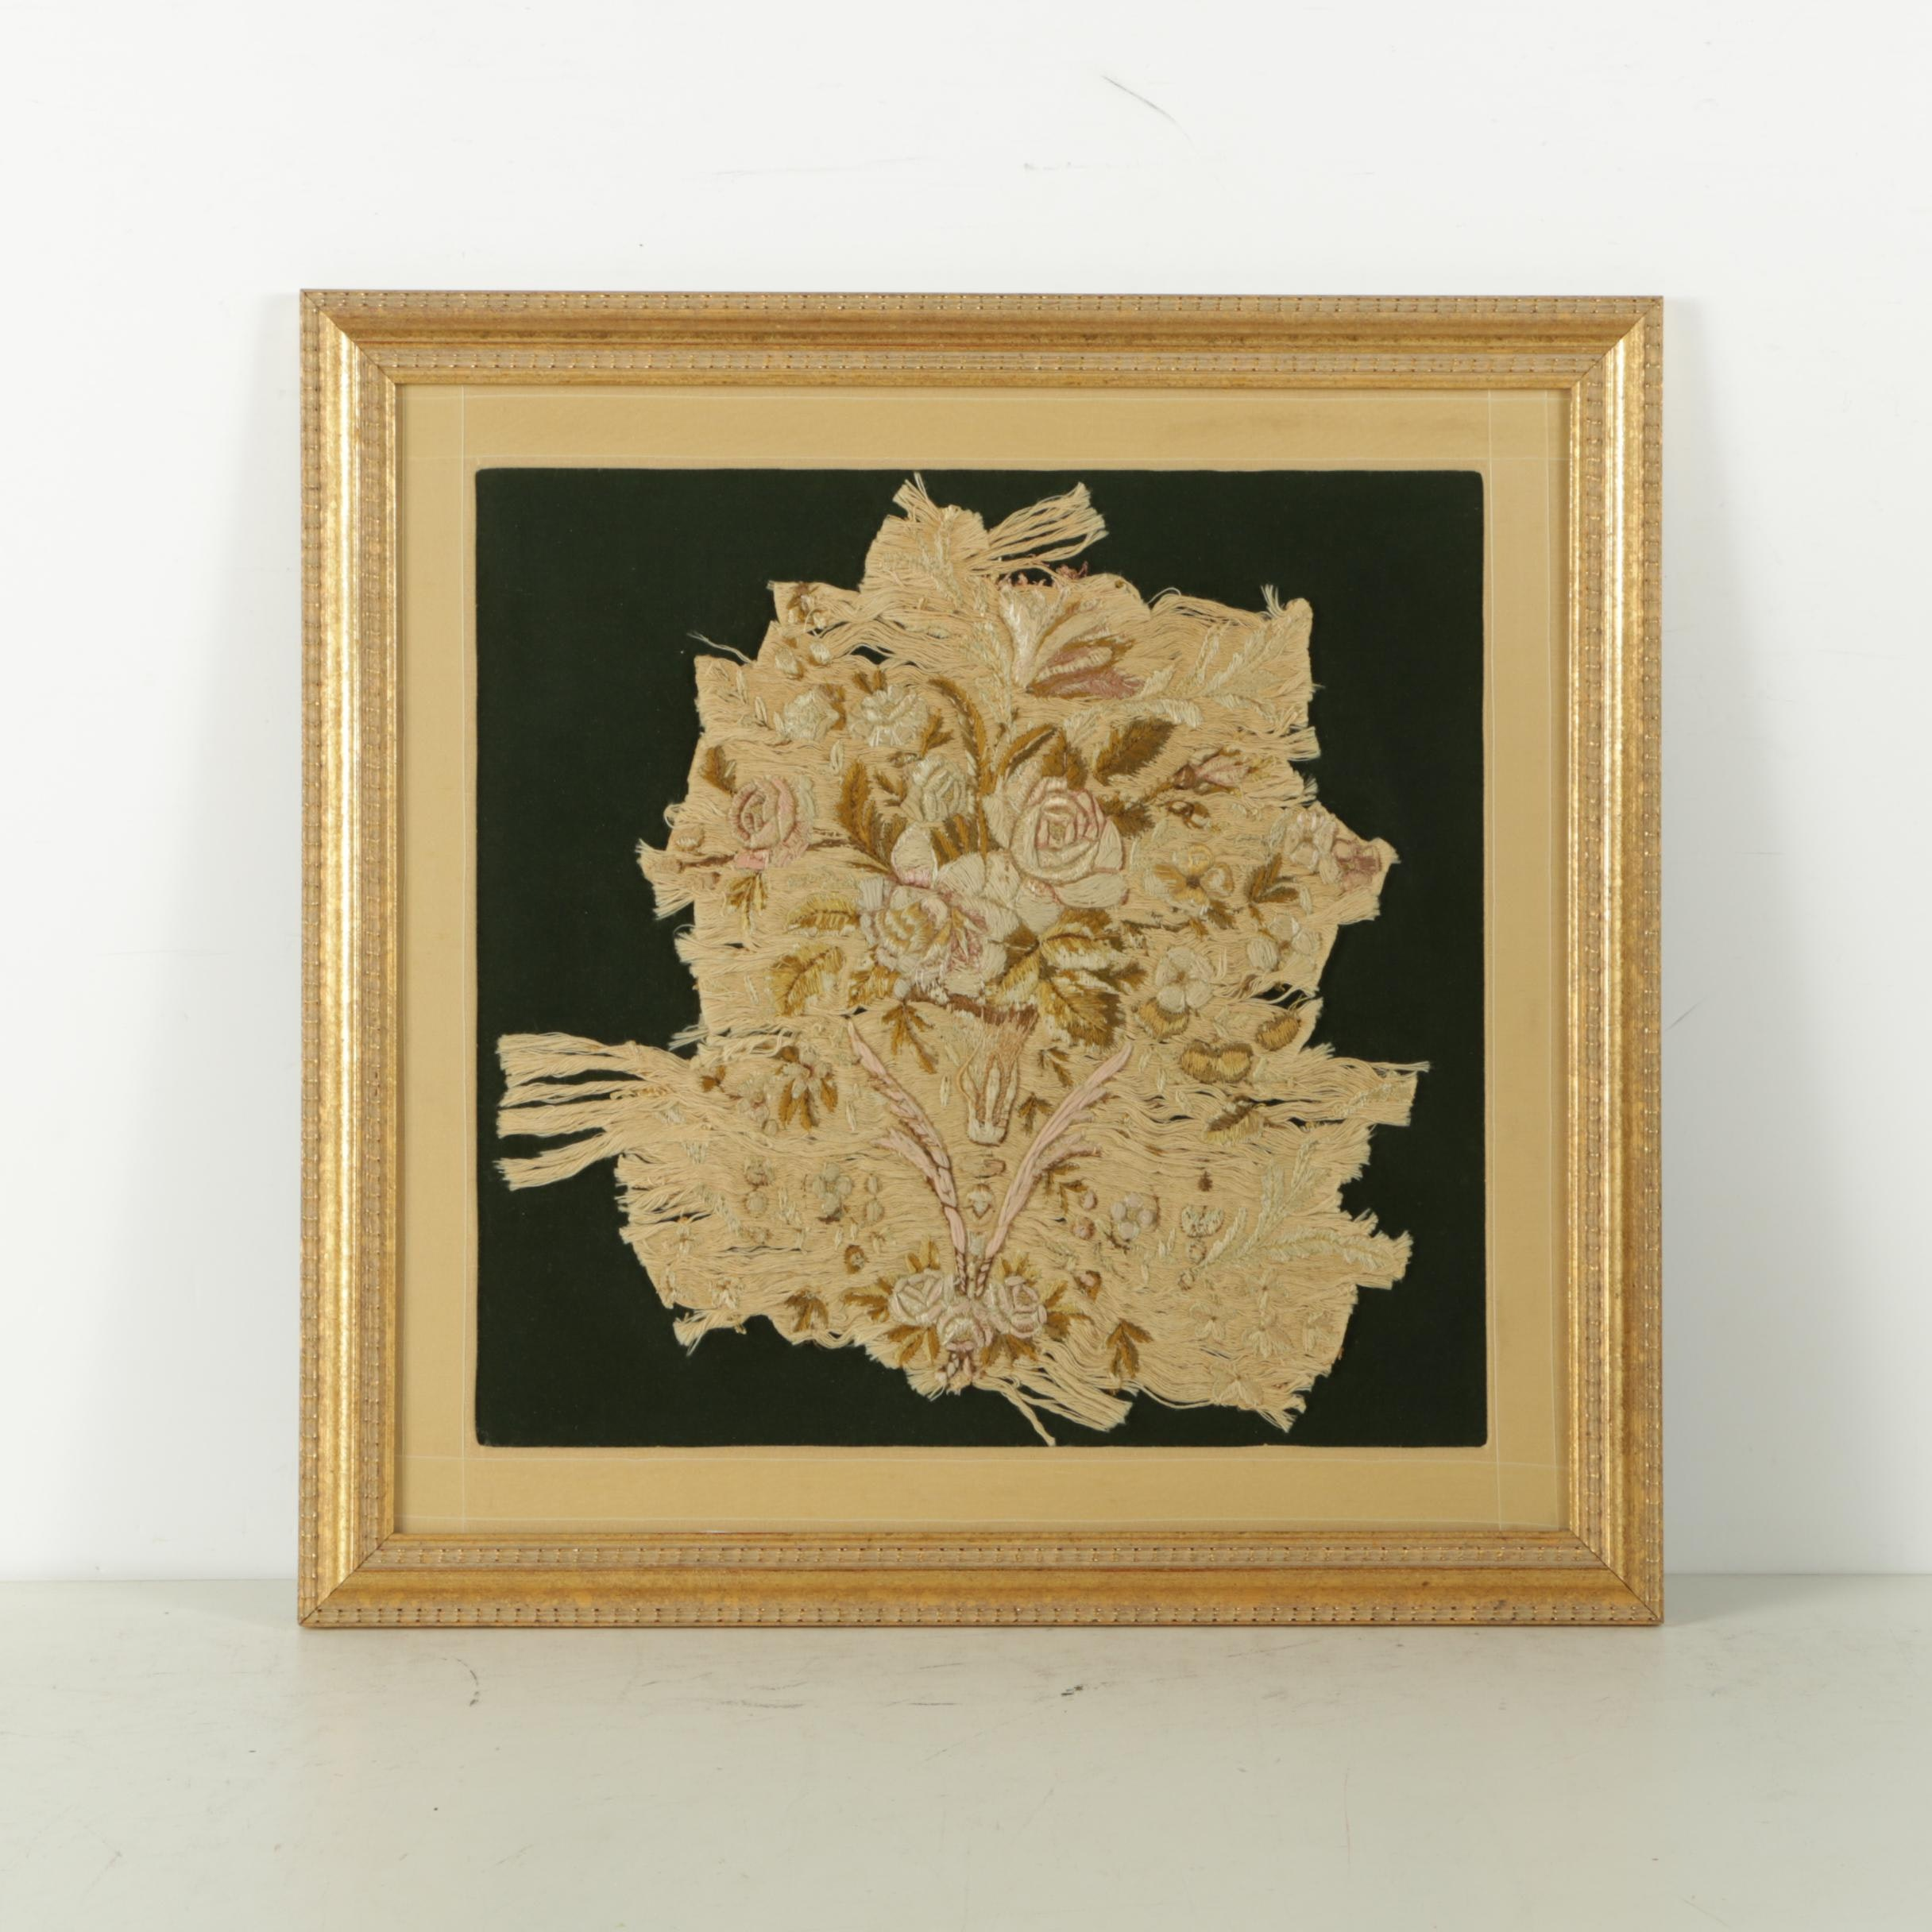 Embroidered Textile with Floral Imagery